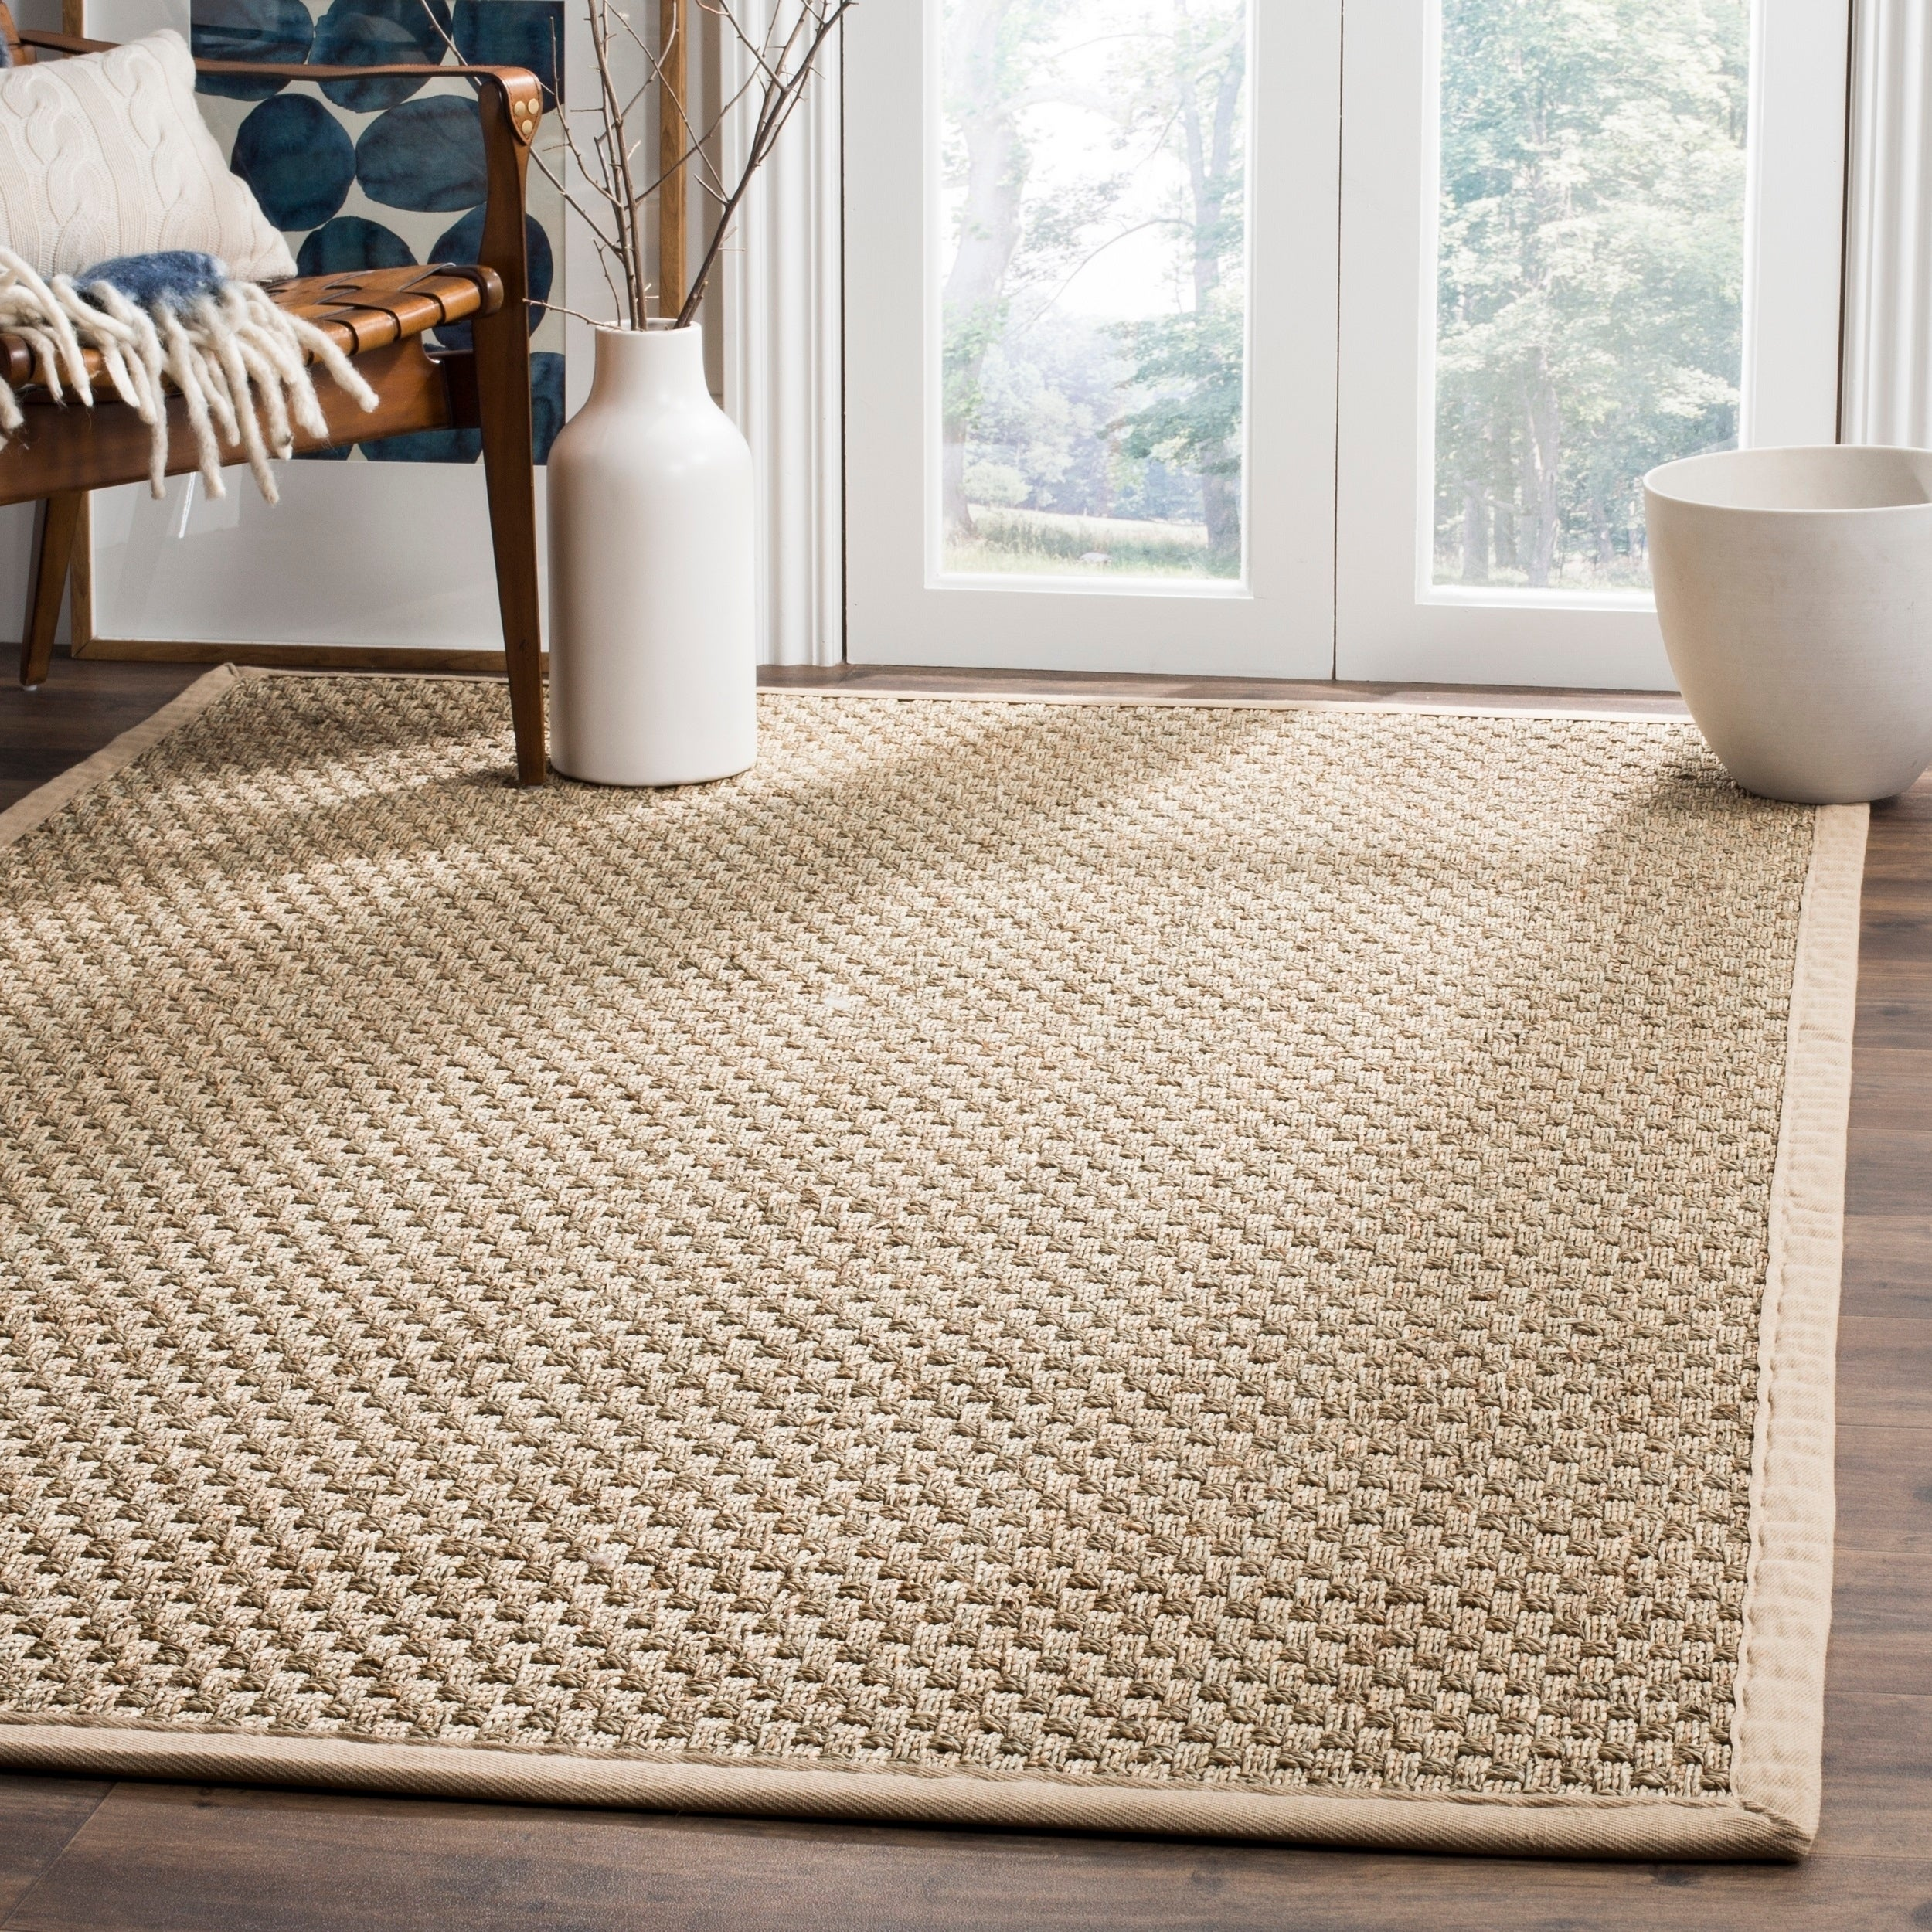 AT HOME by O Hand-woven Sisal Natural/ Beige Seagrass Rug (4' x 6') at Sears.com